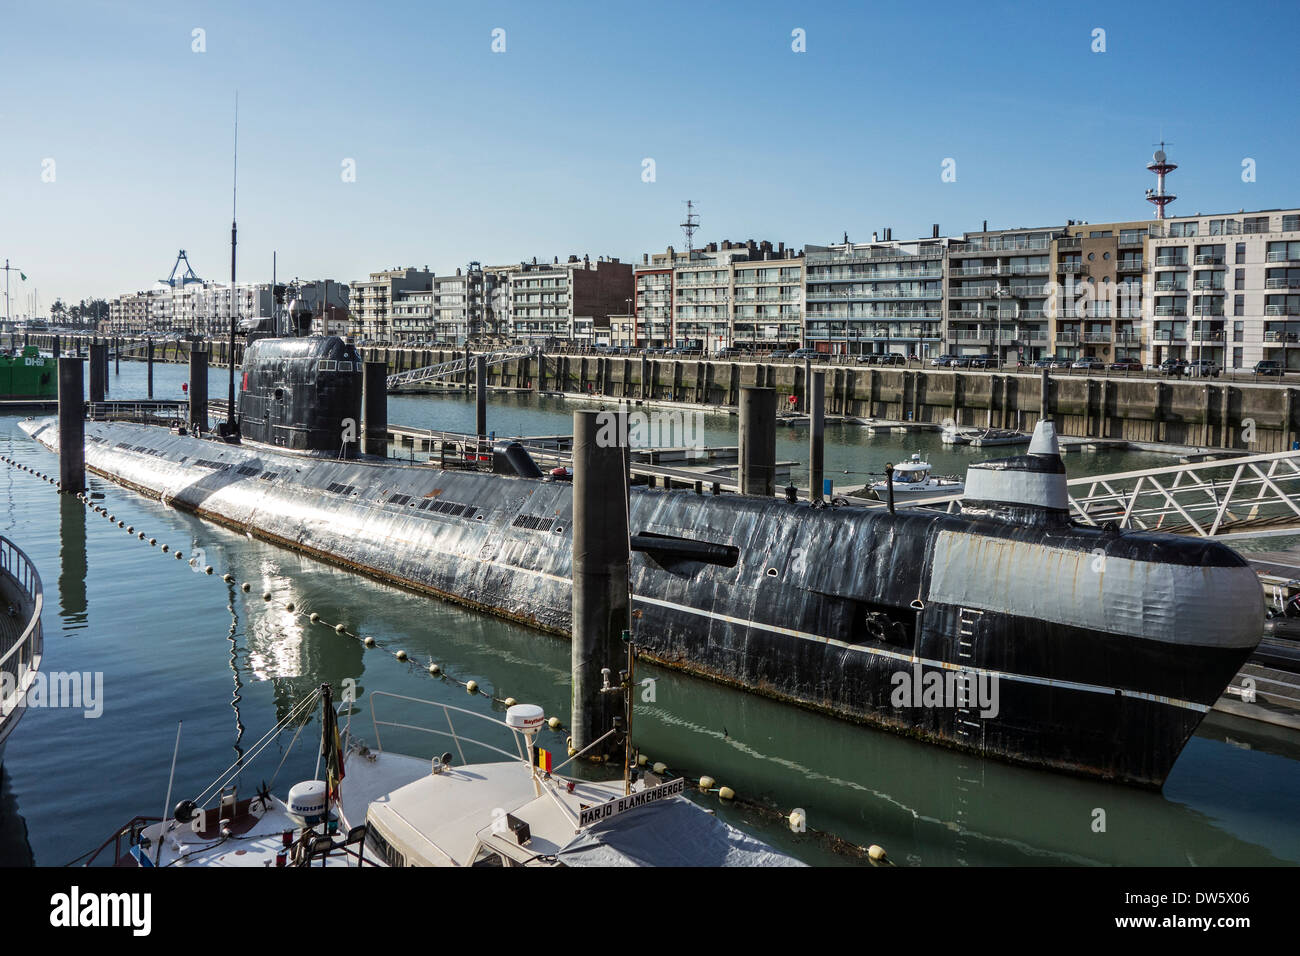 Russian diesel-electric submarine B-143 / U-480 Foxtrot type 641 at the Seafront Maritime Theme Park in Zeebrugge, Belgium - Stock Image